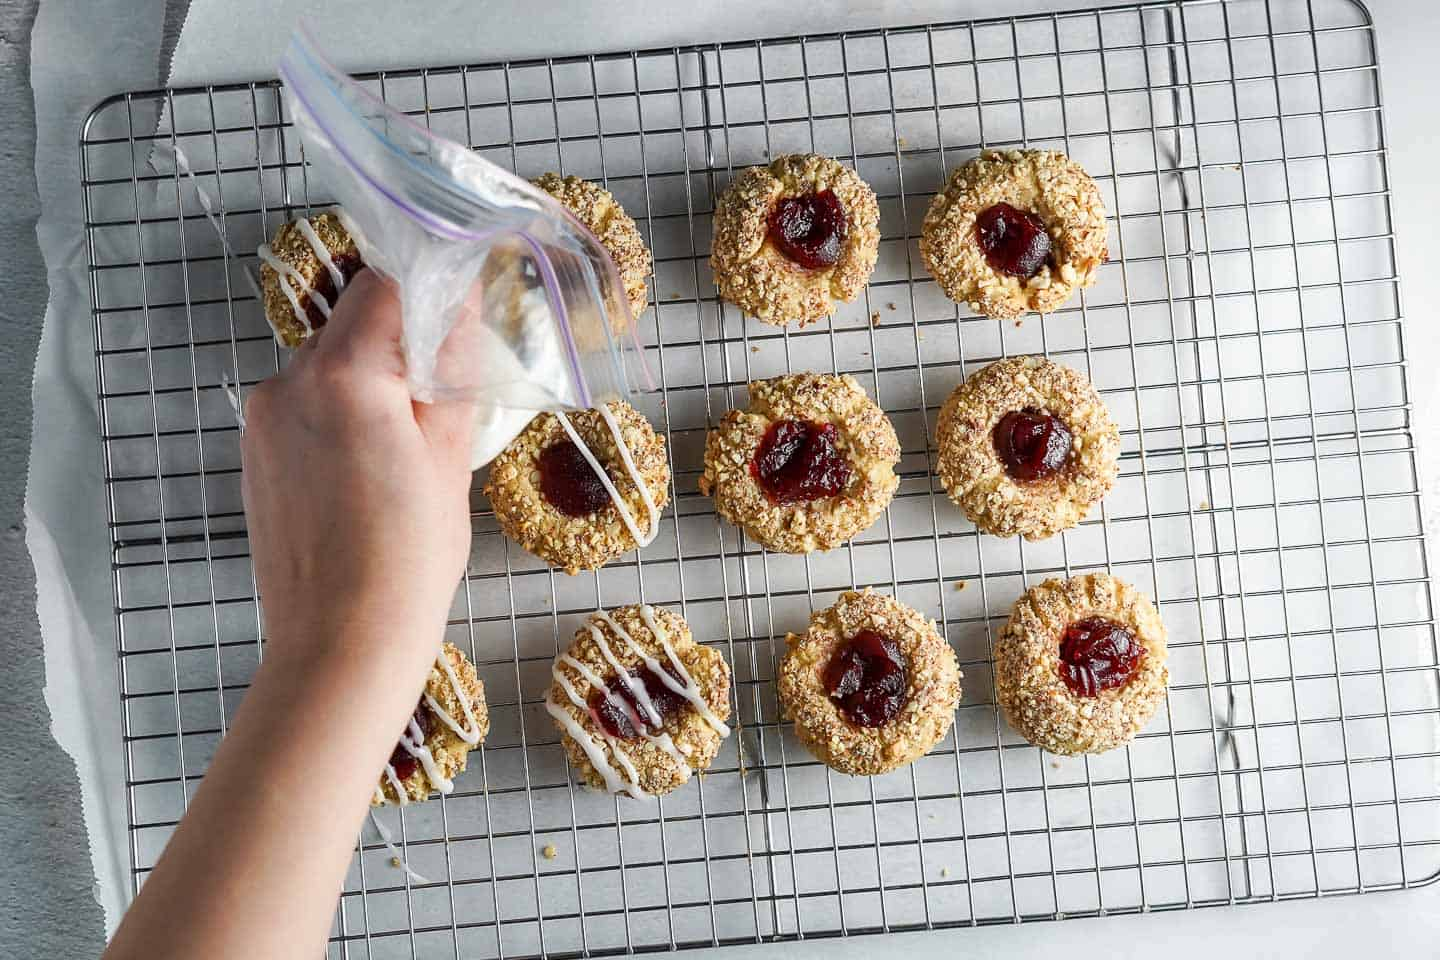 Squeezing Icing over Thumbprint Cookies